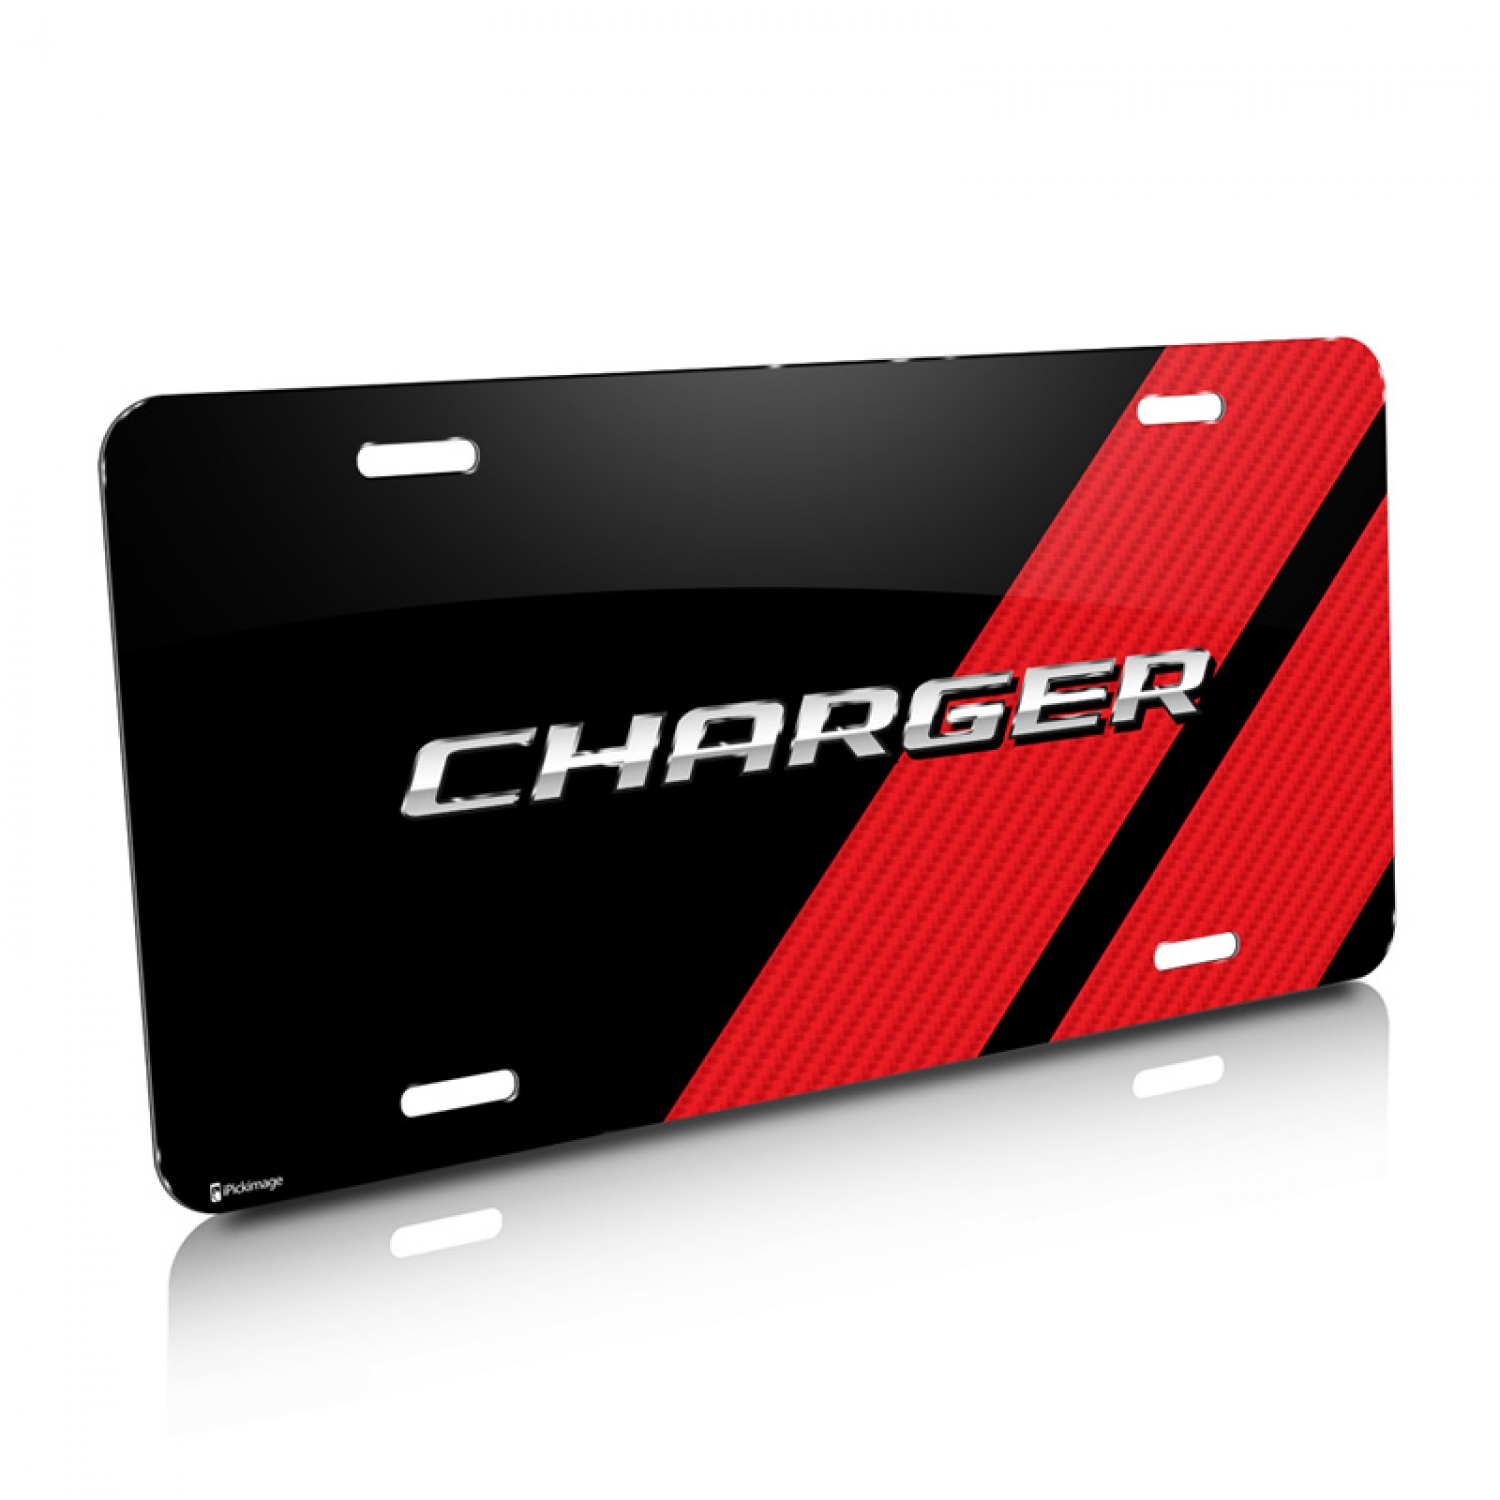 Dodge Charger Carbon Fiber Look Red Stripe Graphic Aluminum License Plate